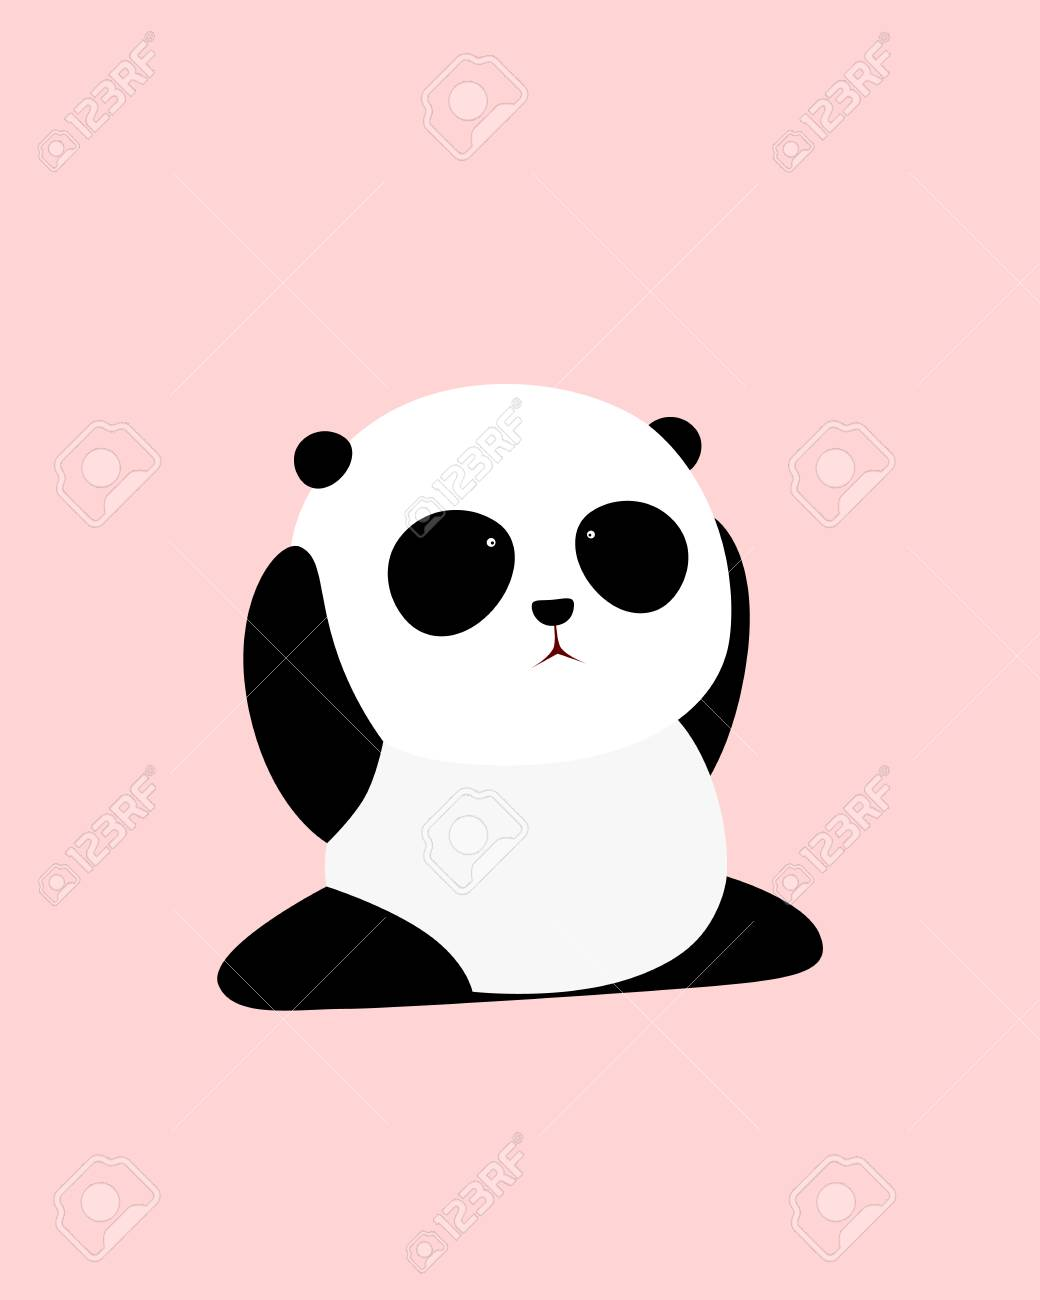 A Cute Cartoon Giant Panda Is Sitting On The Ground Doing Splits Royalty Free Cliparts Vectors And Stock Illustration Image 103511230